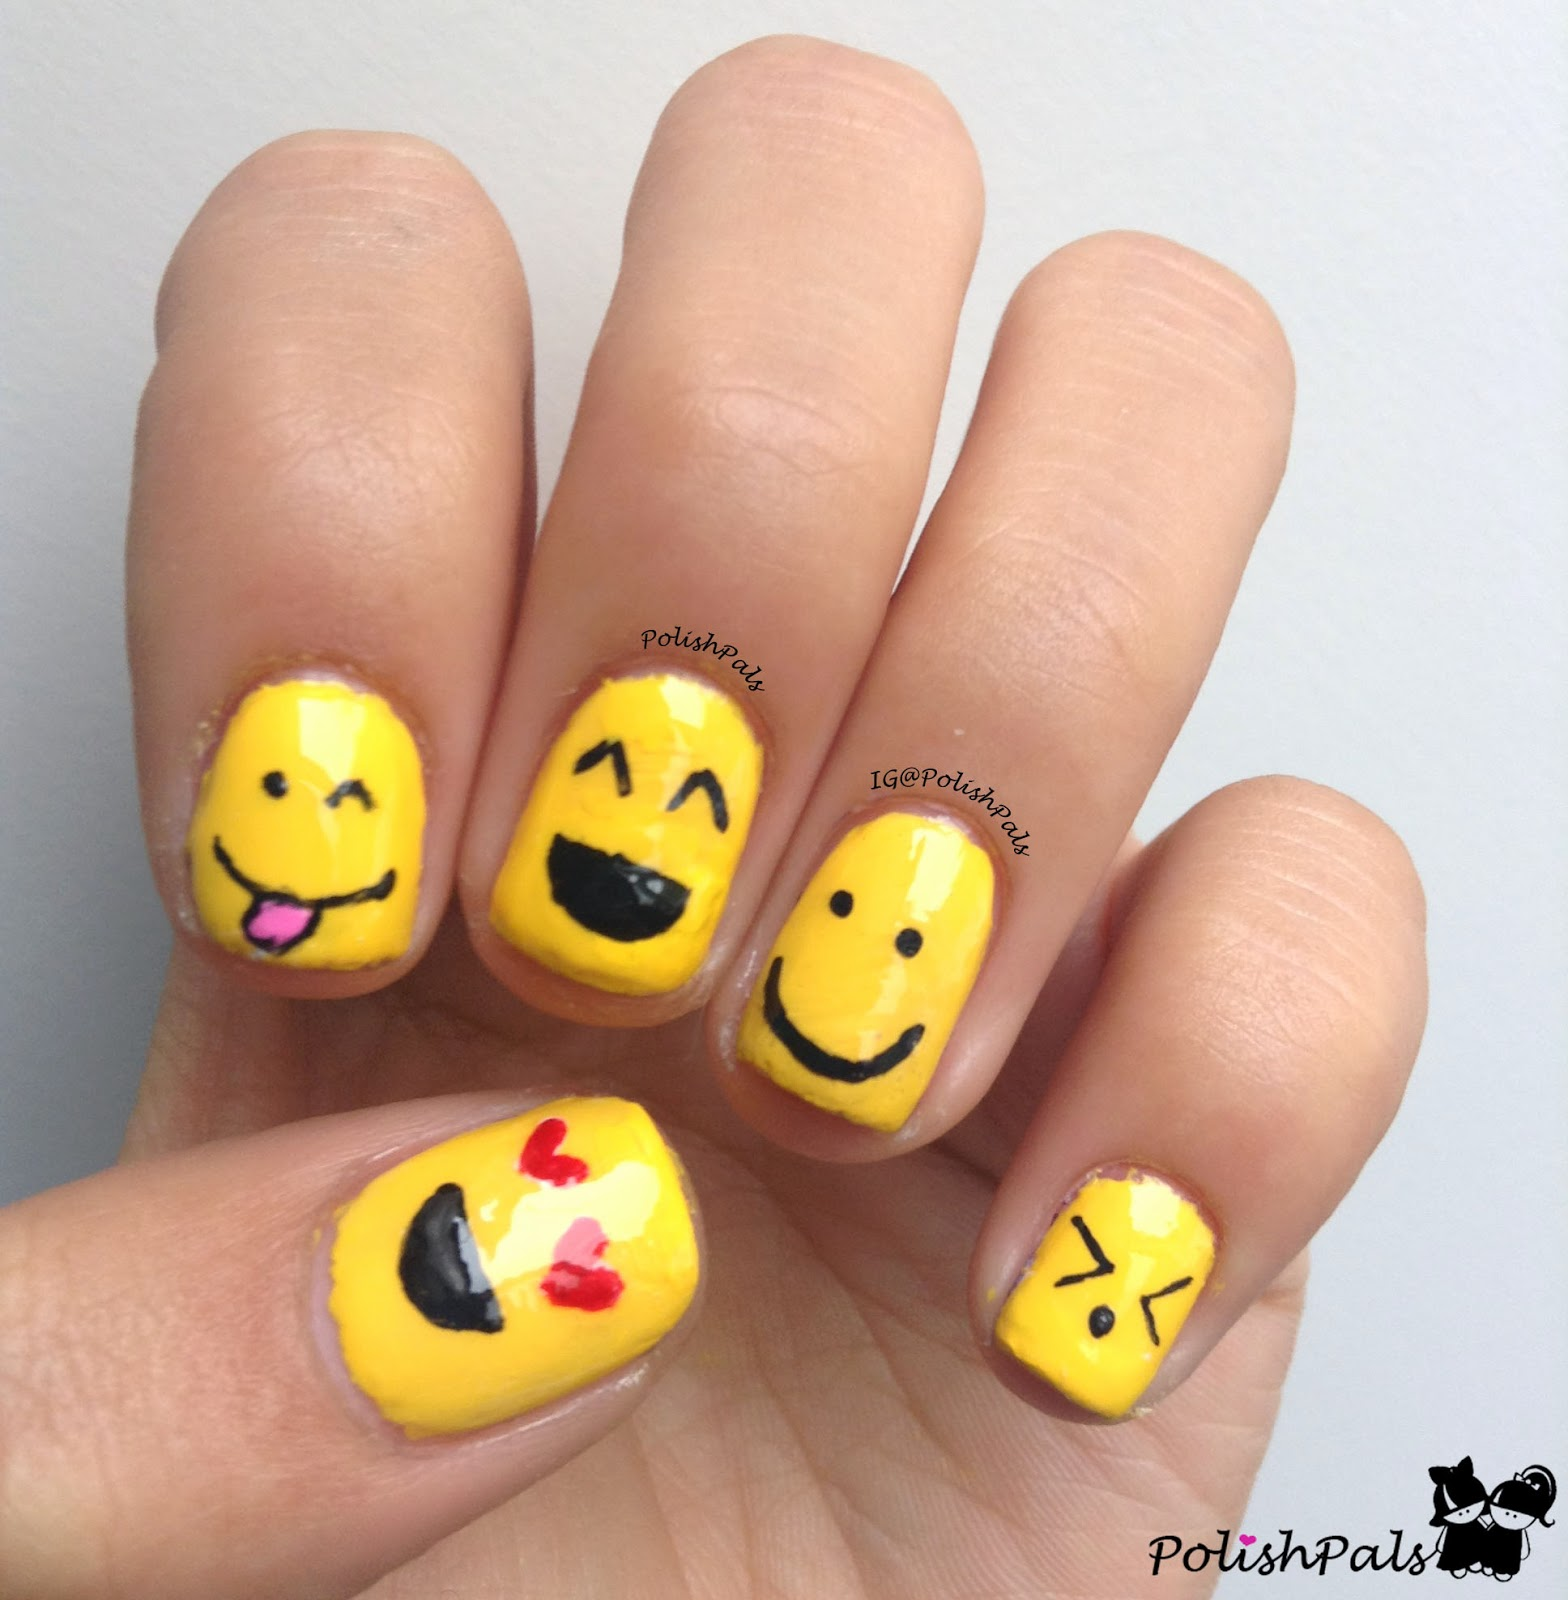 Polish Pals: S is for Smiley Face